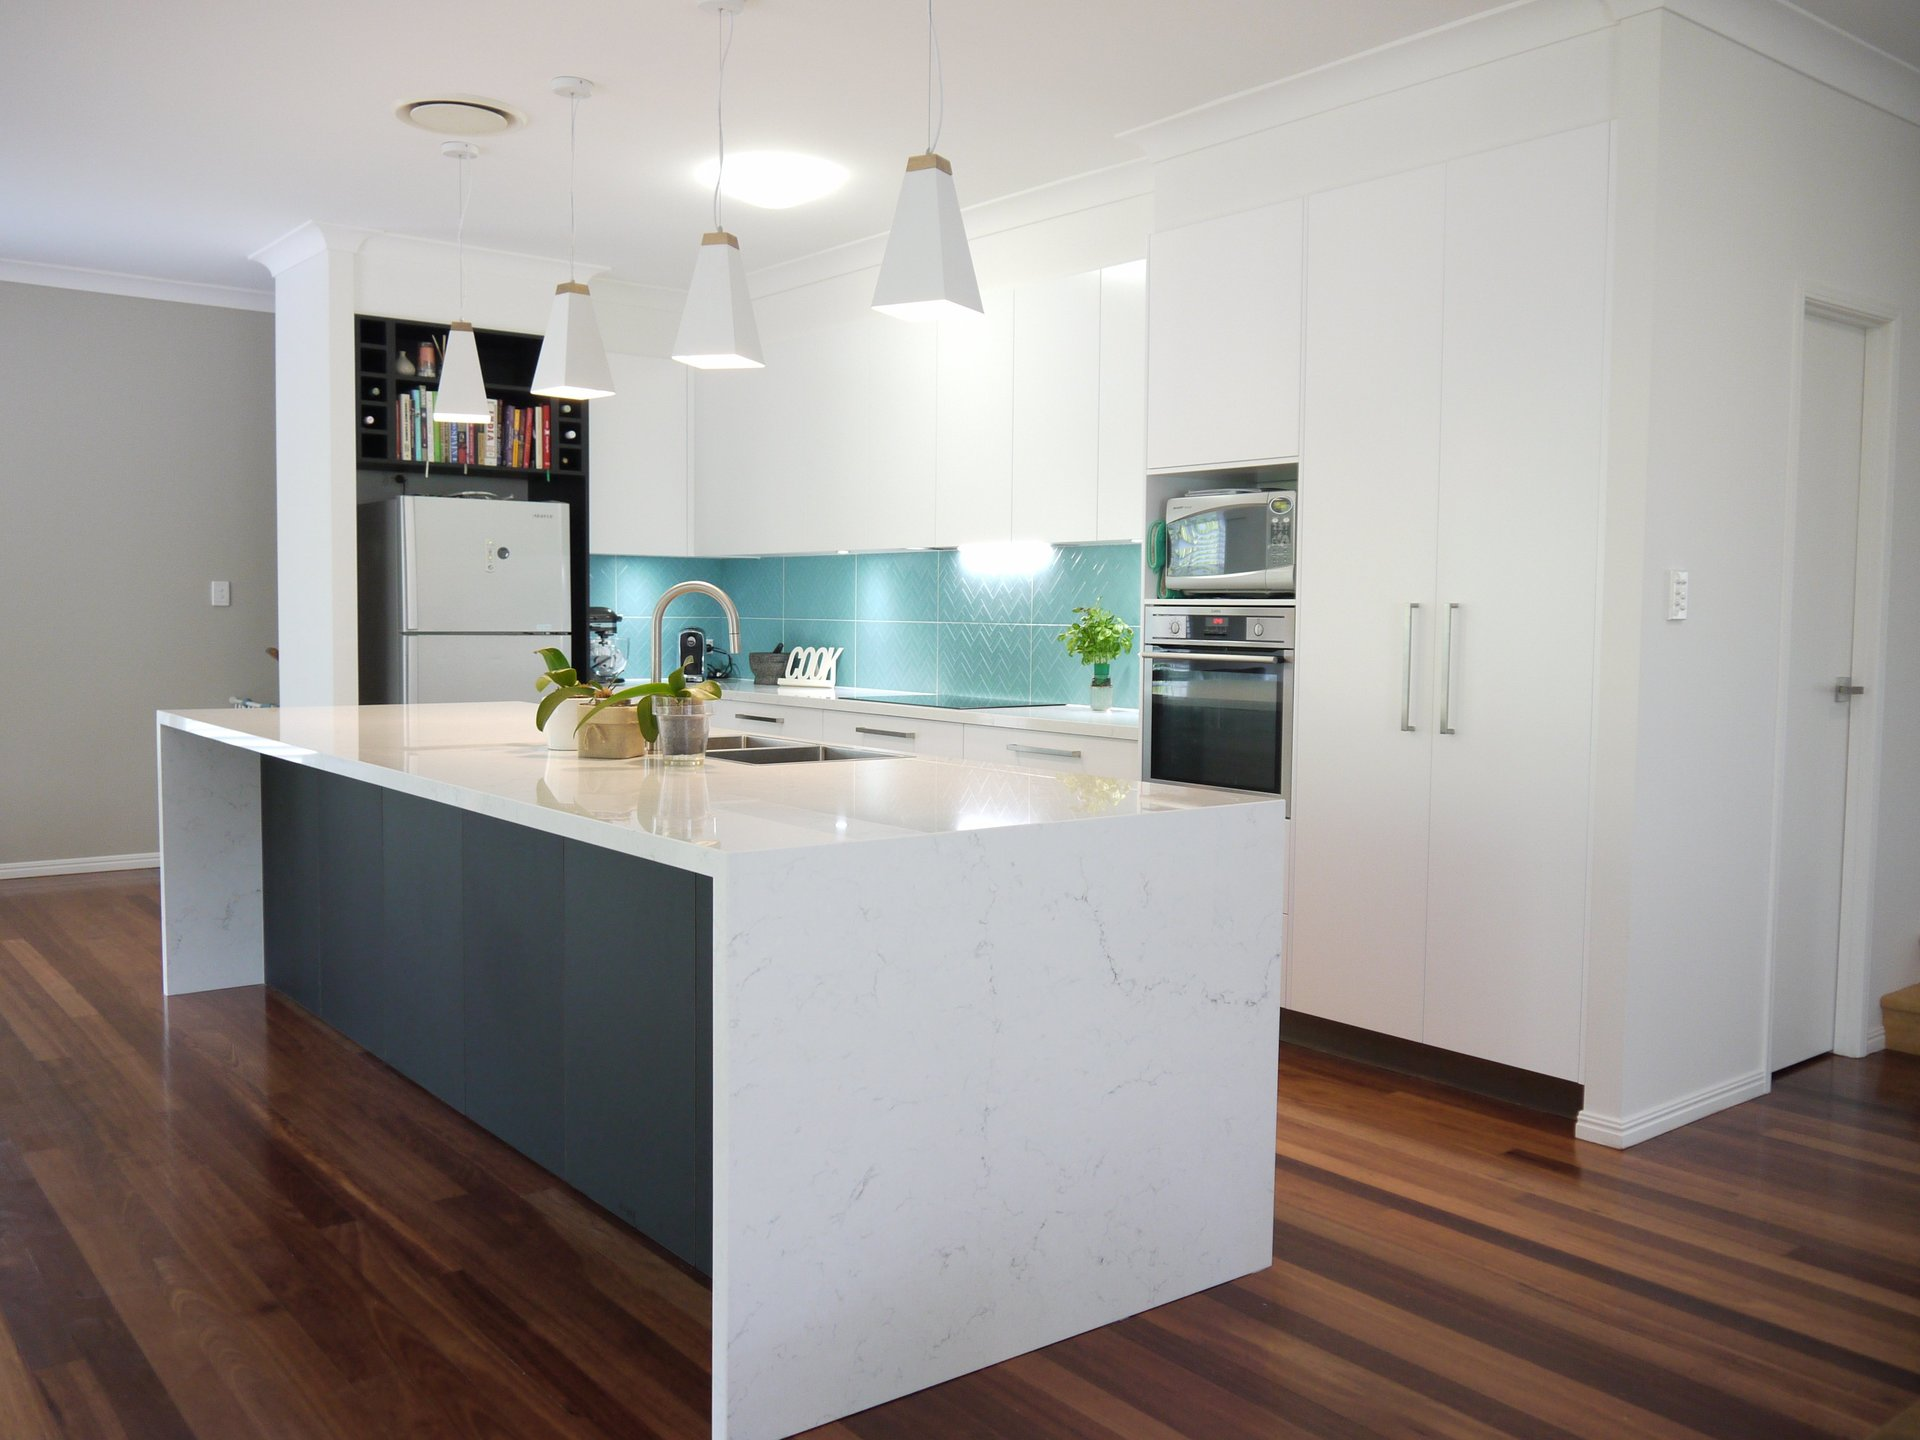 kitchen designs sunshine coast qld kitchen cabinets coast look cabinets 463